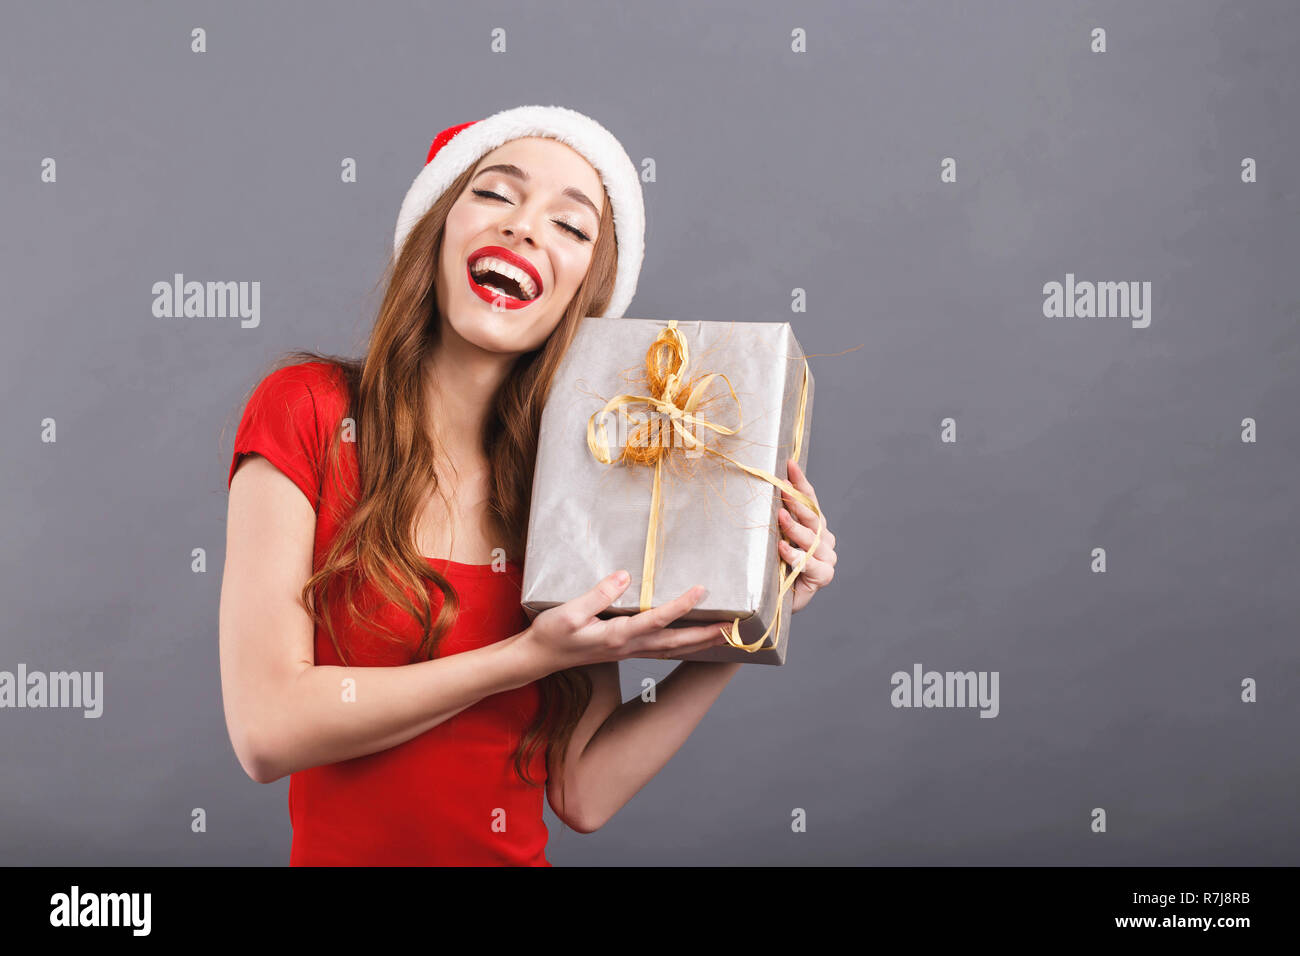 d5ce66d9ccea3 Excited christmas woman wearing Santa hat and red dress laughing and  enjoying of a gift